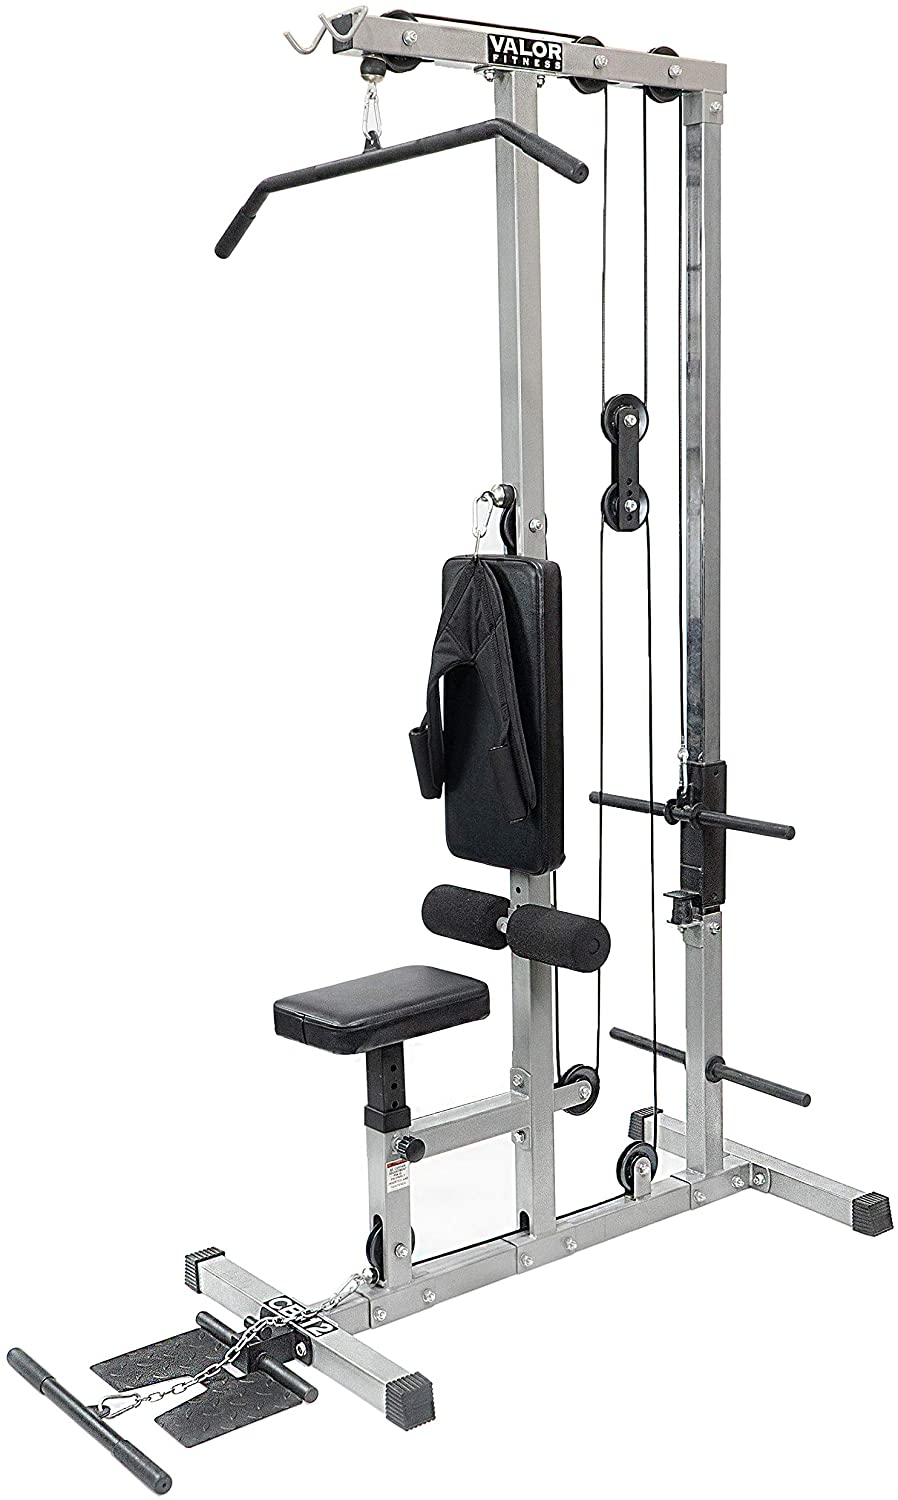 Top 10 Best Cable Machines for Home Gym in 2020 Reviews 2